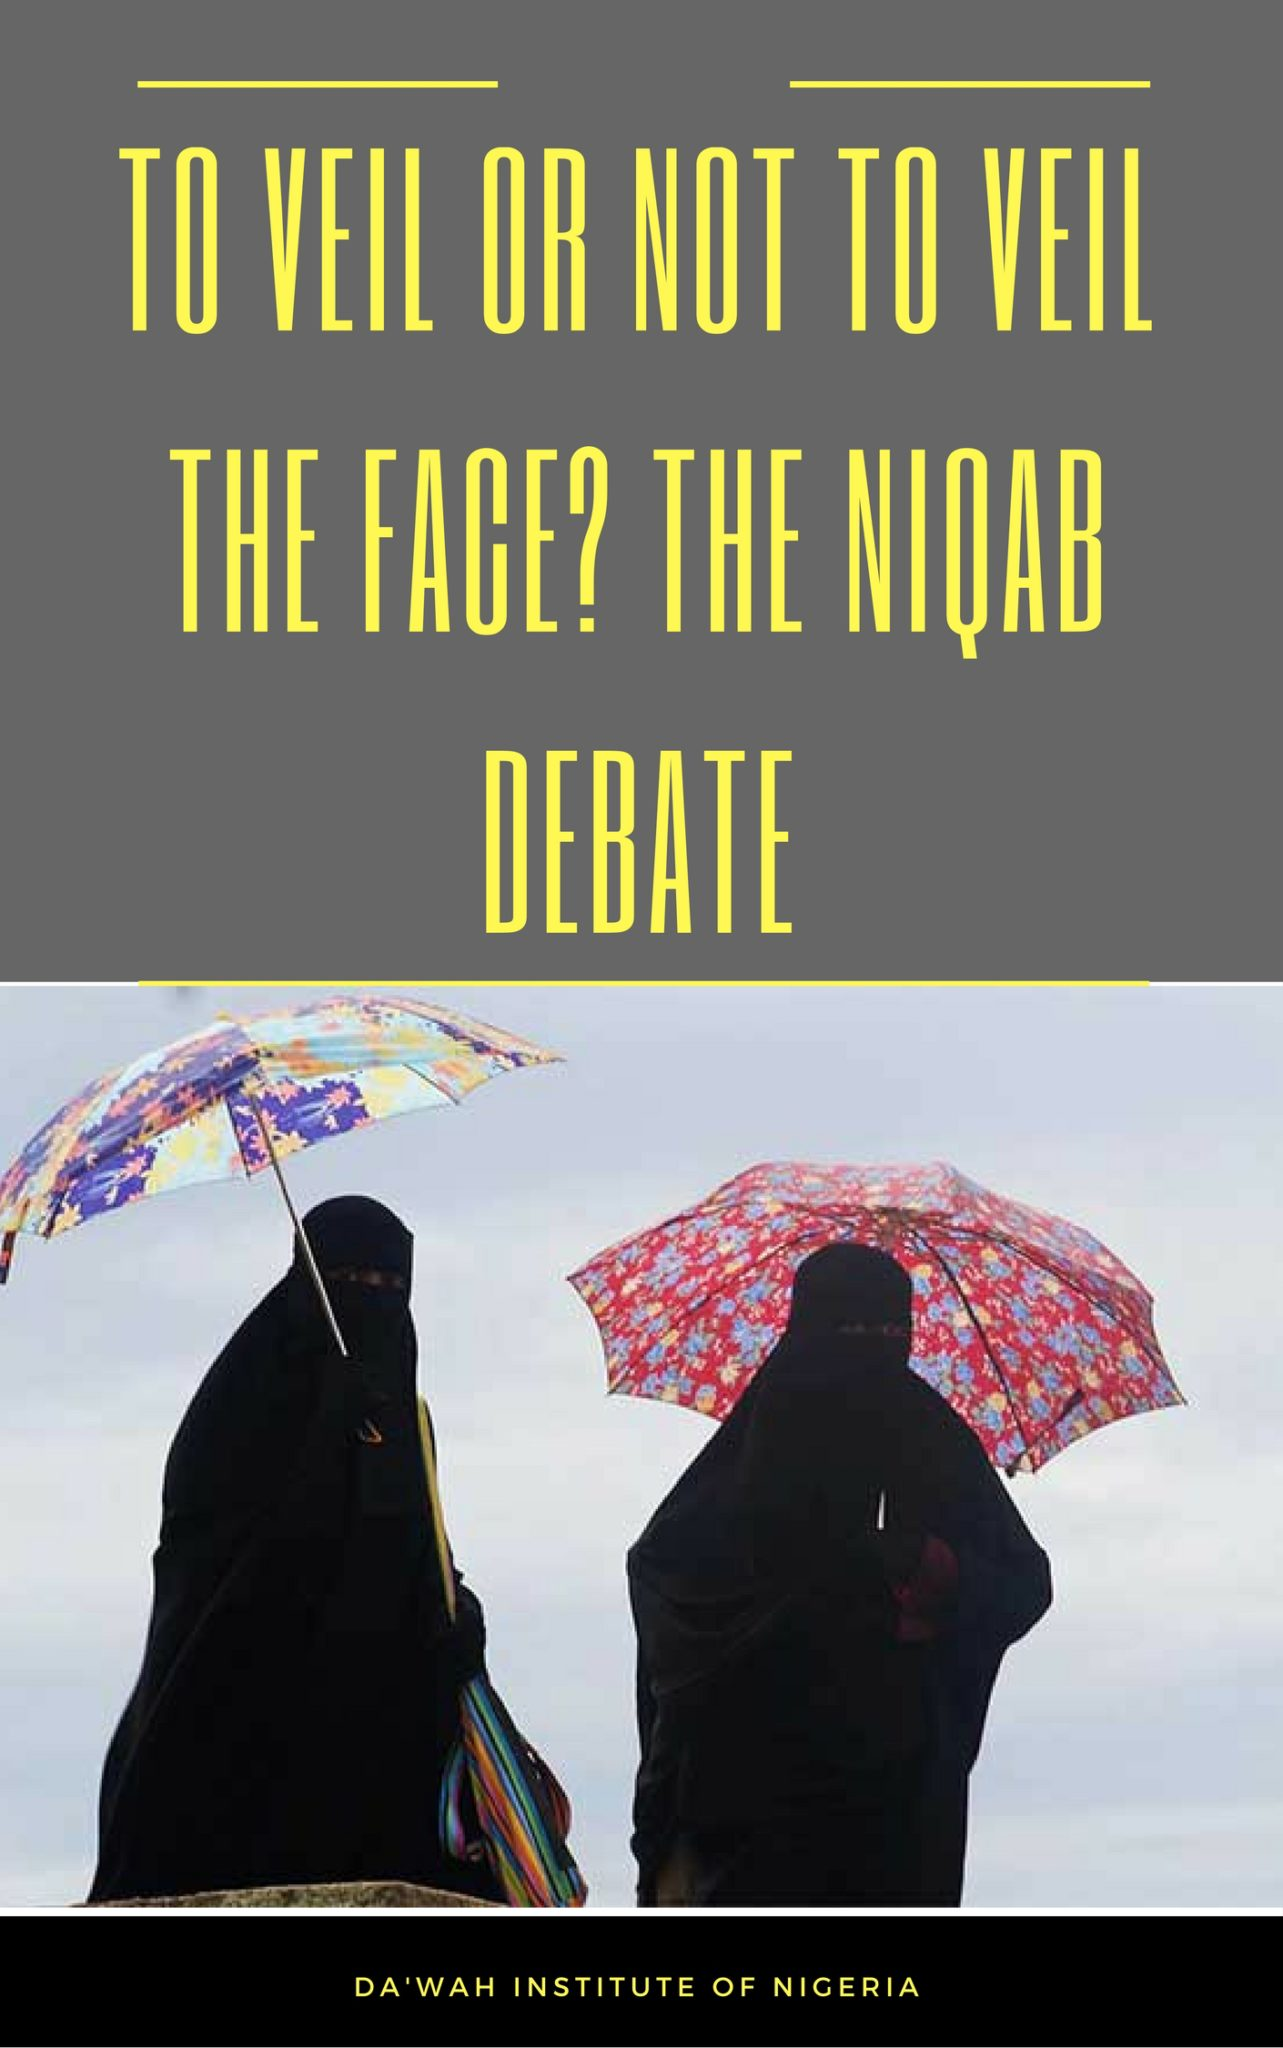 https://dawahinstitute.org/wp-content/uploads/To-Veil-or-Not-to-Veil-the-Face_-The-Niqab-Debate.jpg